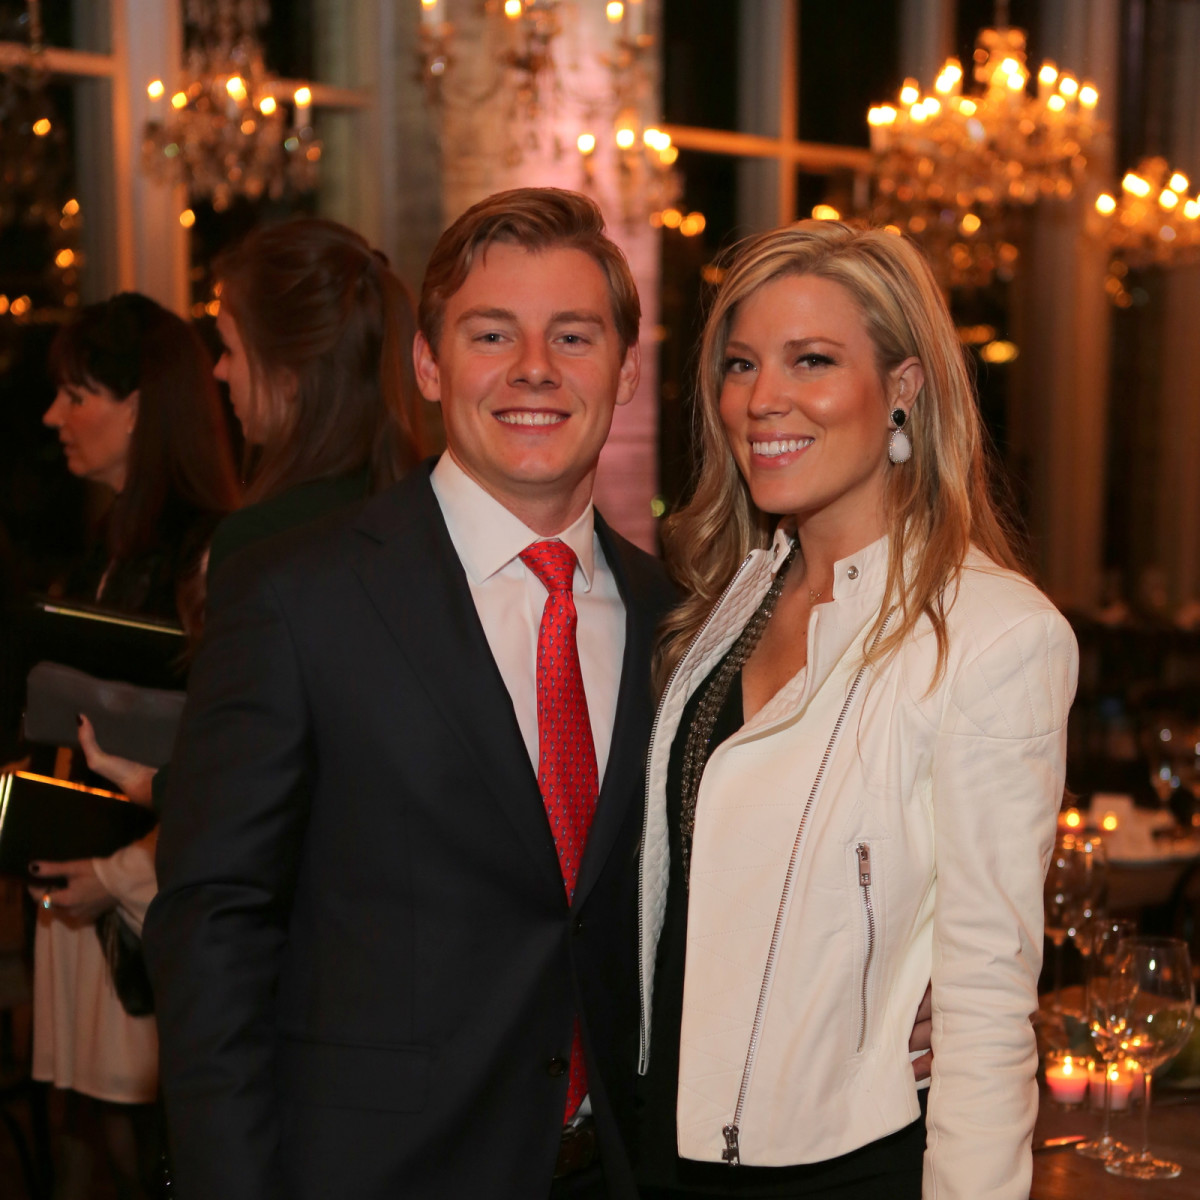 News, Equinox Opening Dinner, Dec. 2015, Austin Alvis, Holly Alvis